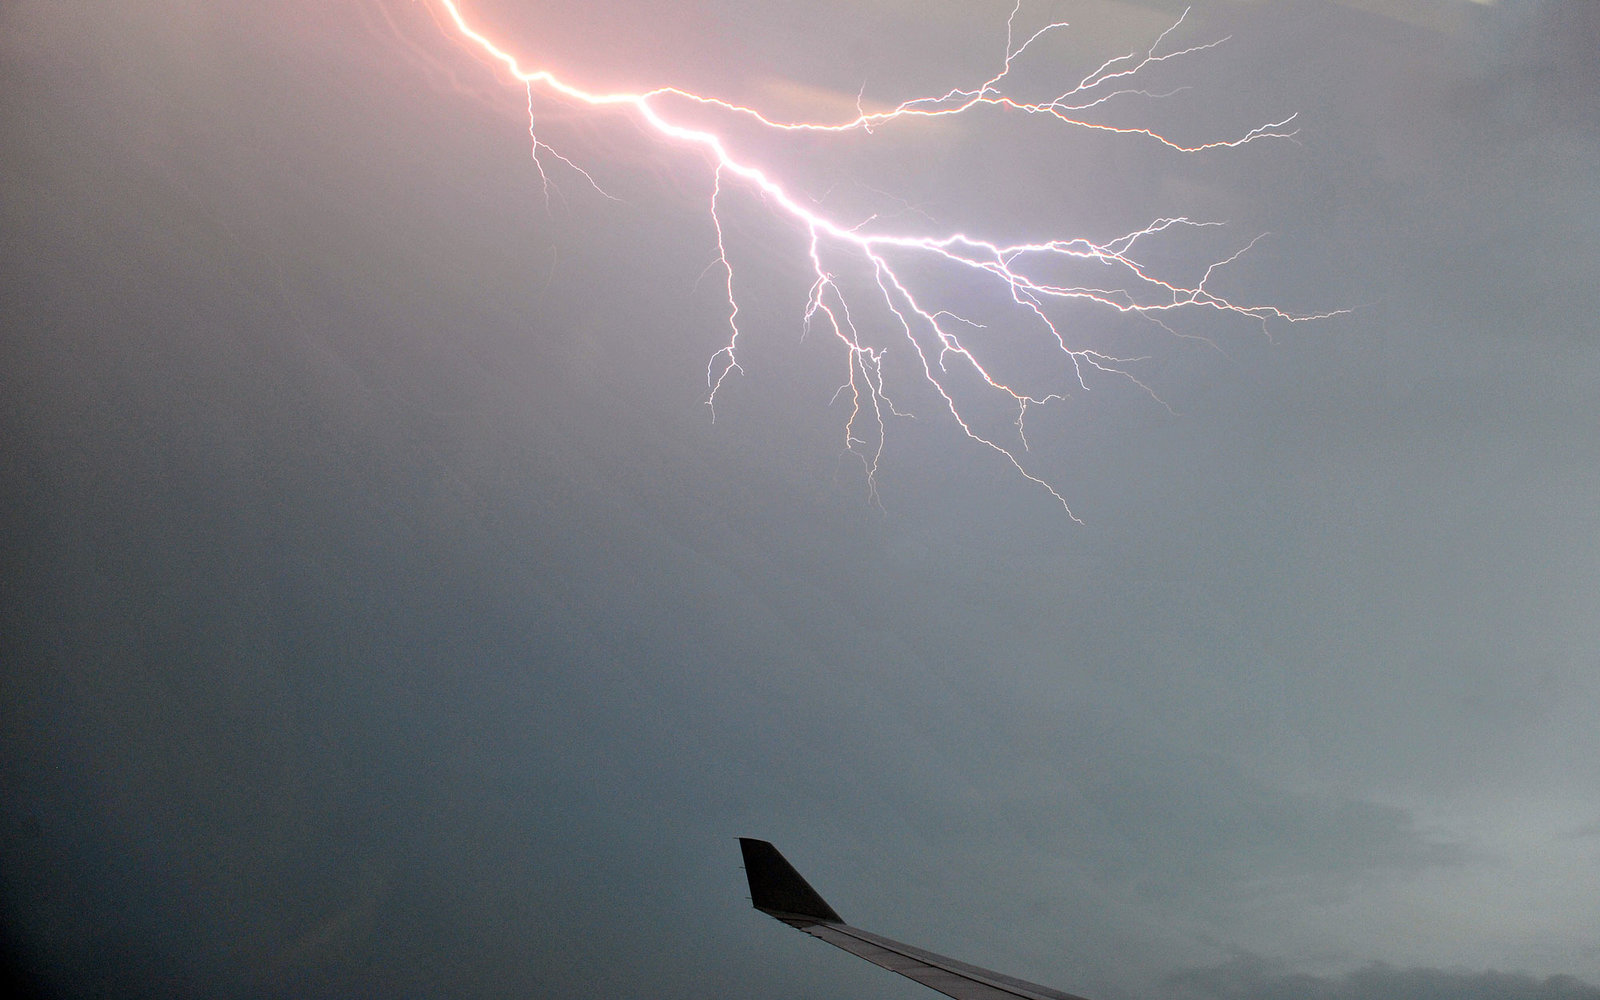 Lightning is seen from airplane